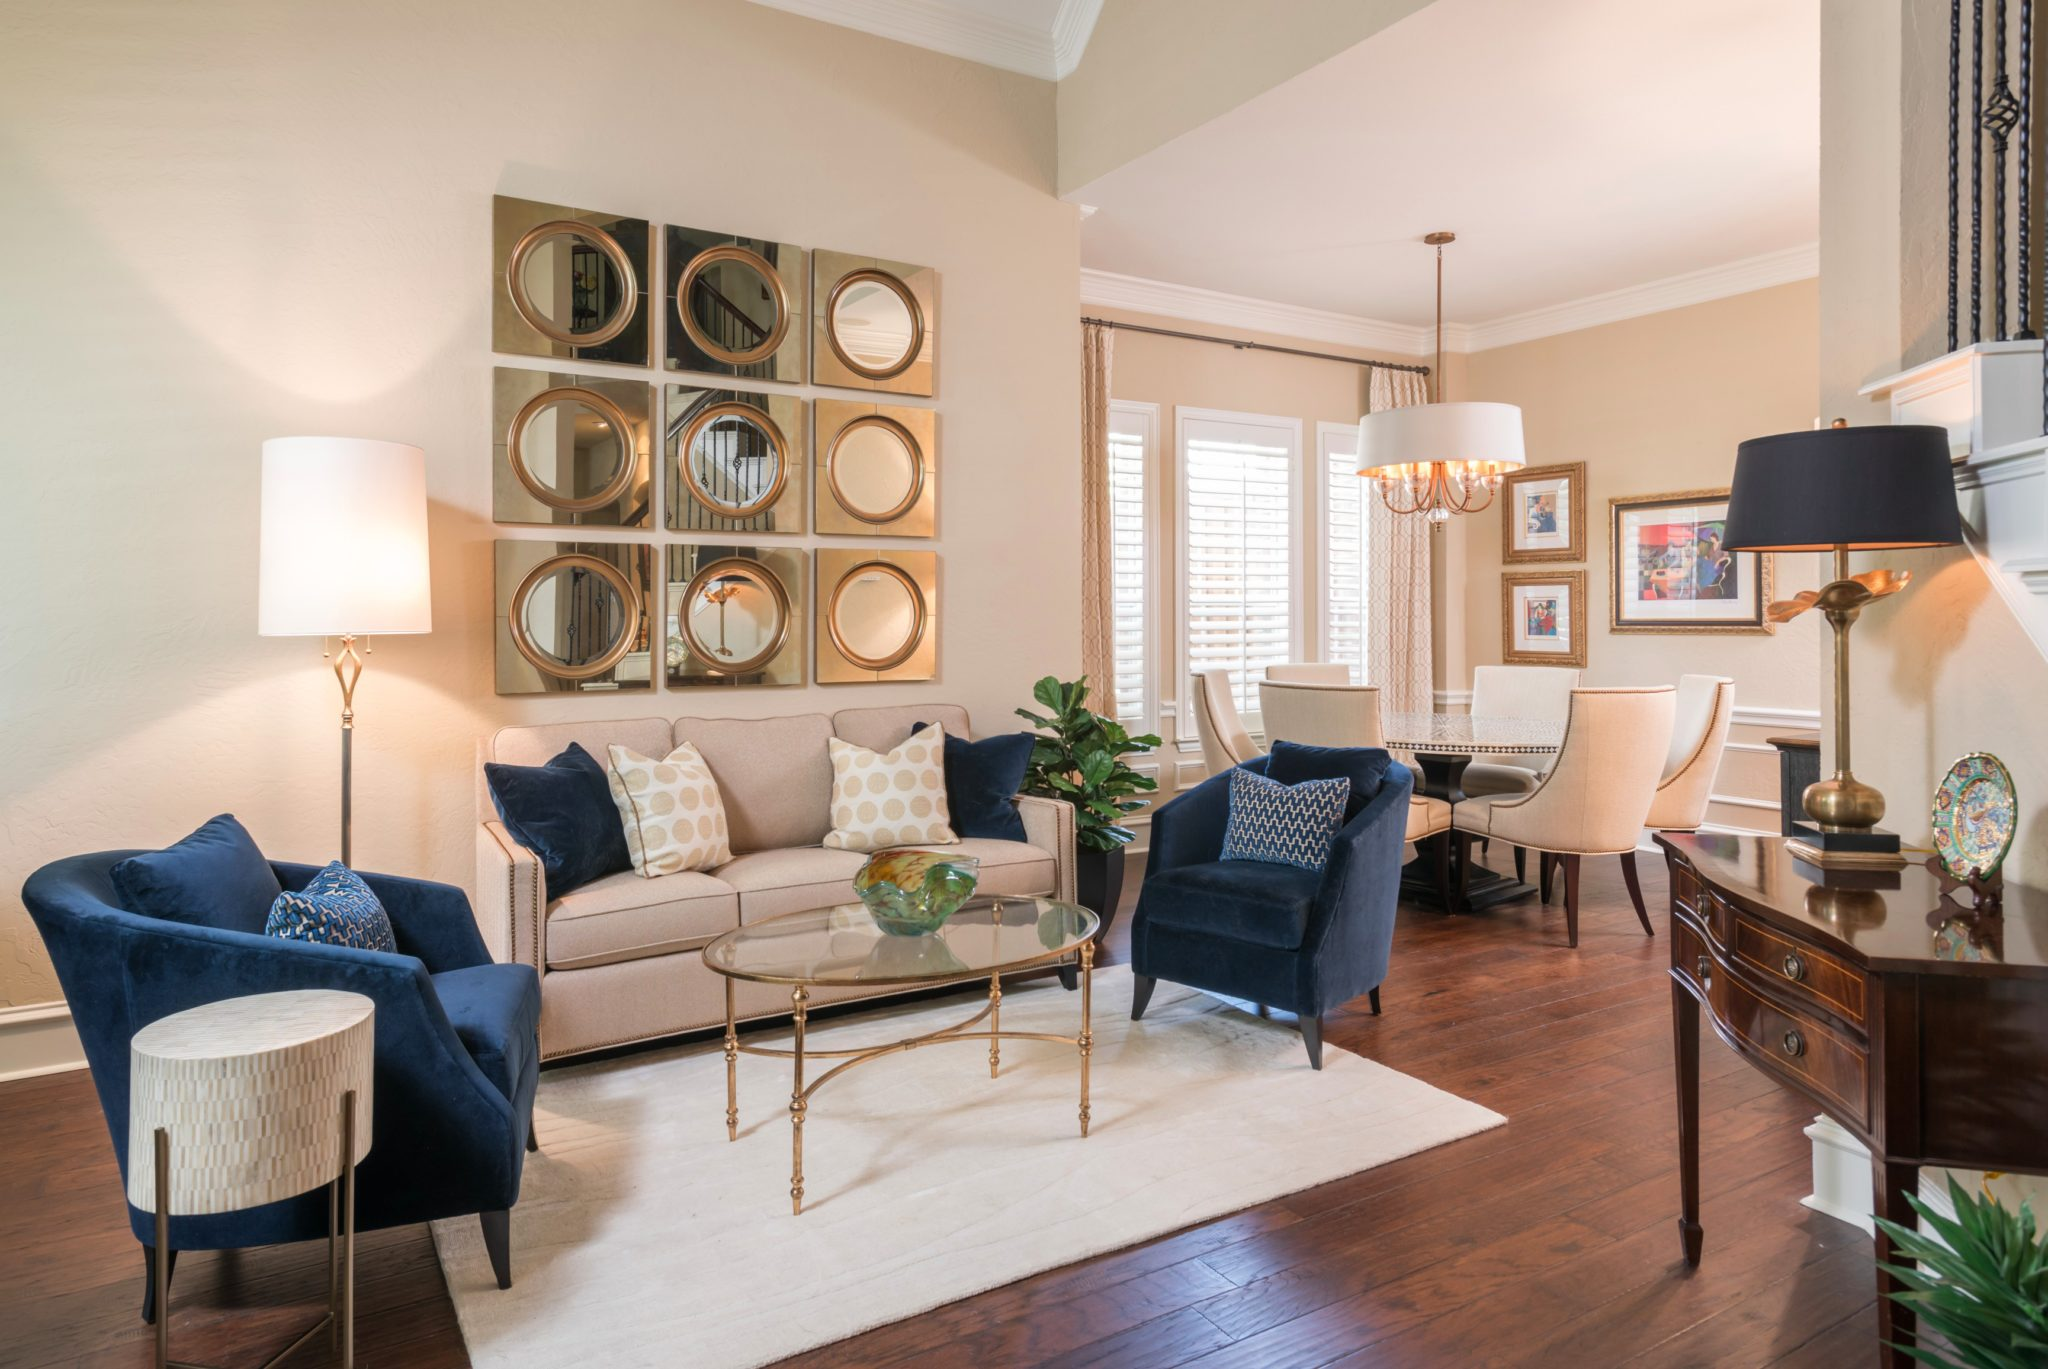 Contemporary living and dining space by Nicole Arnold Interiors